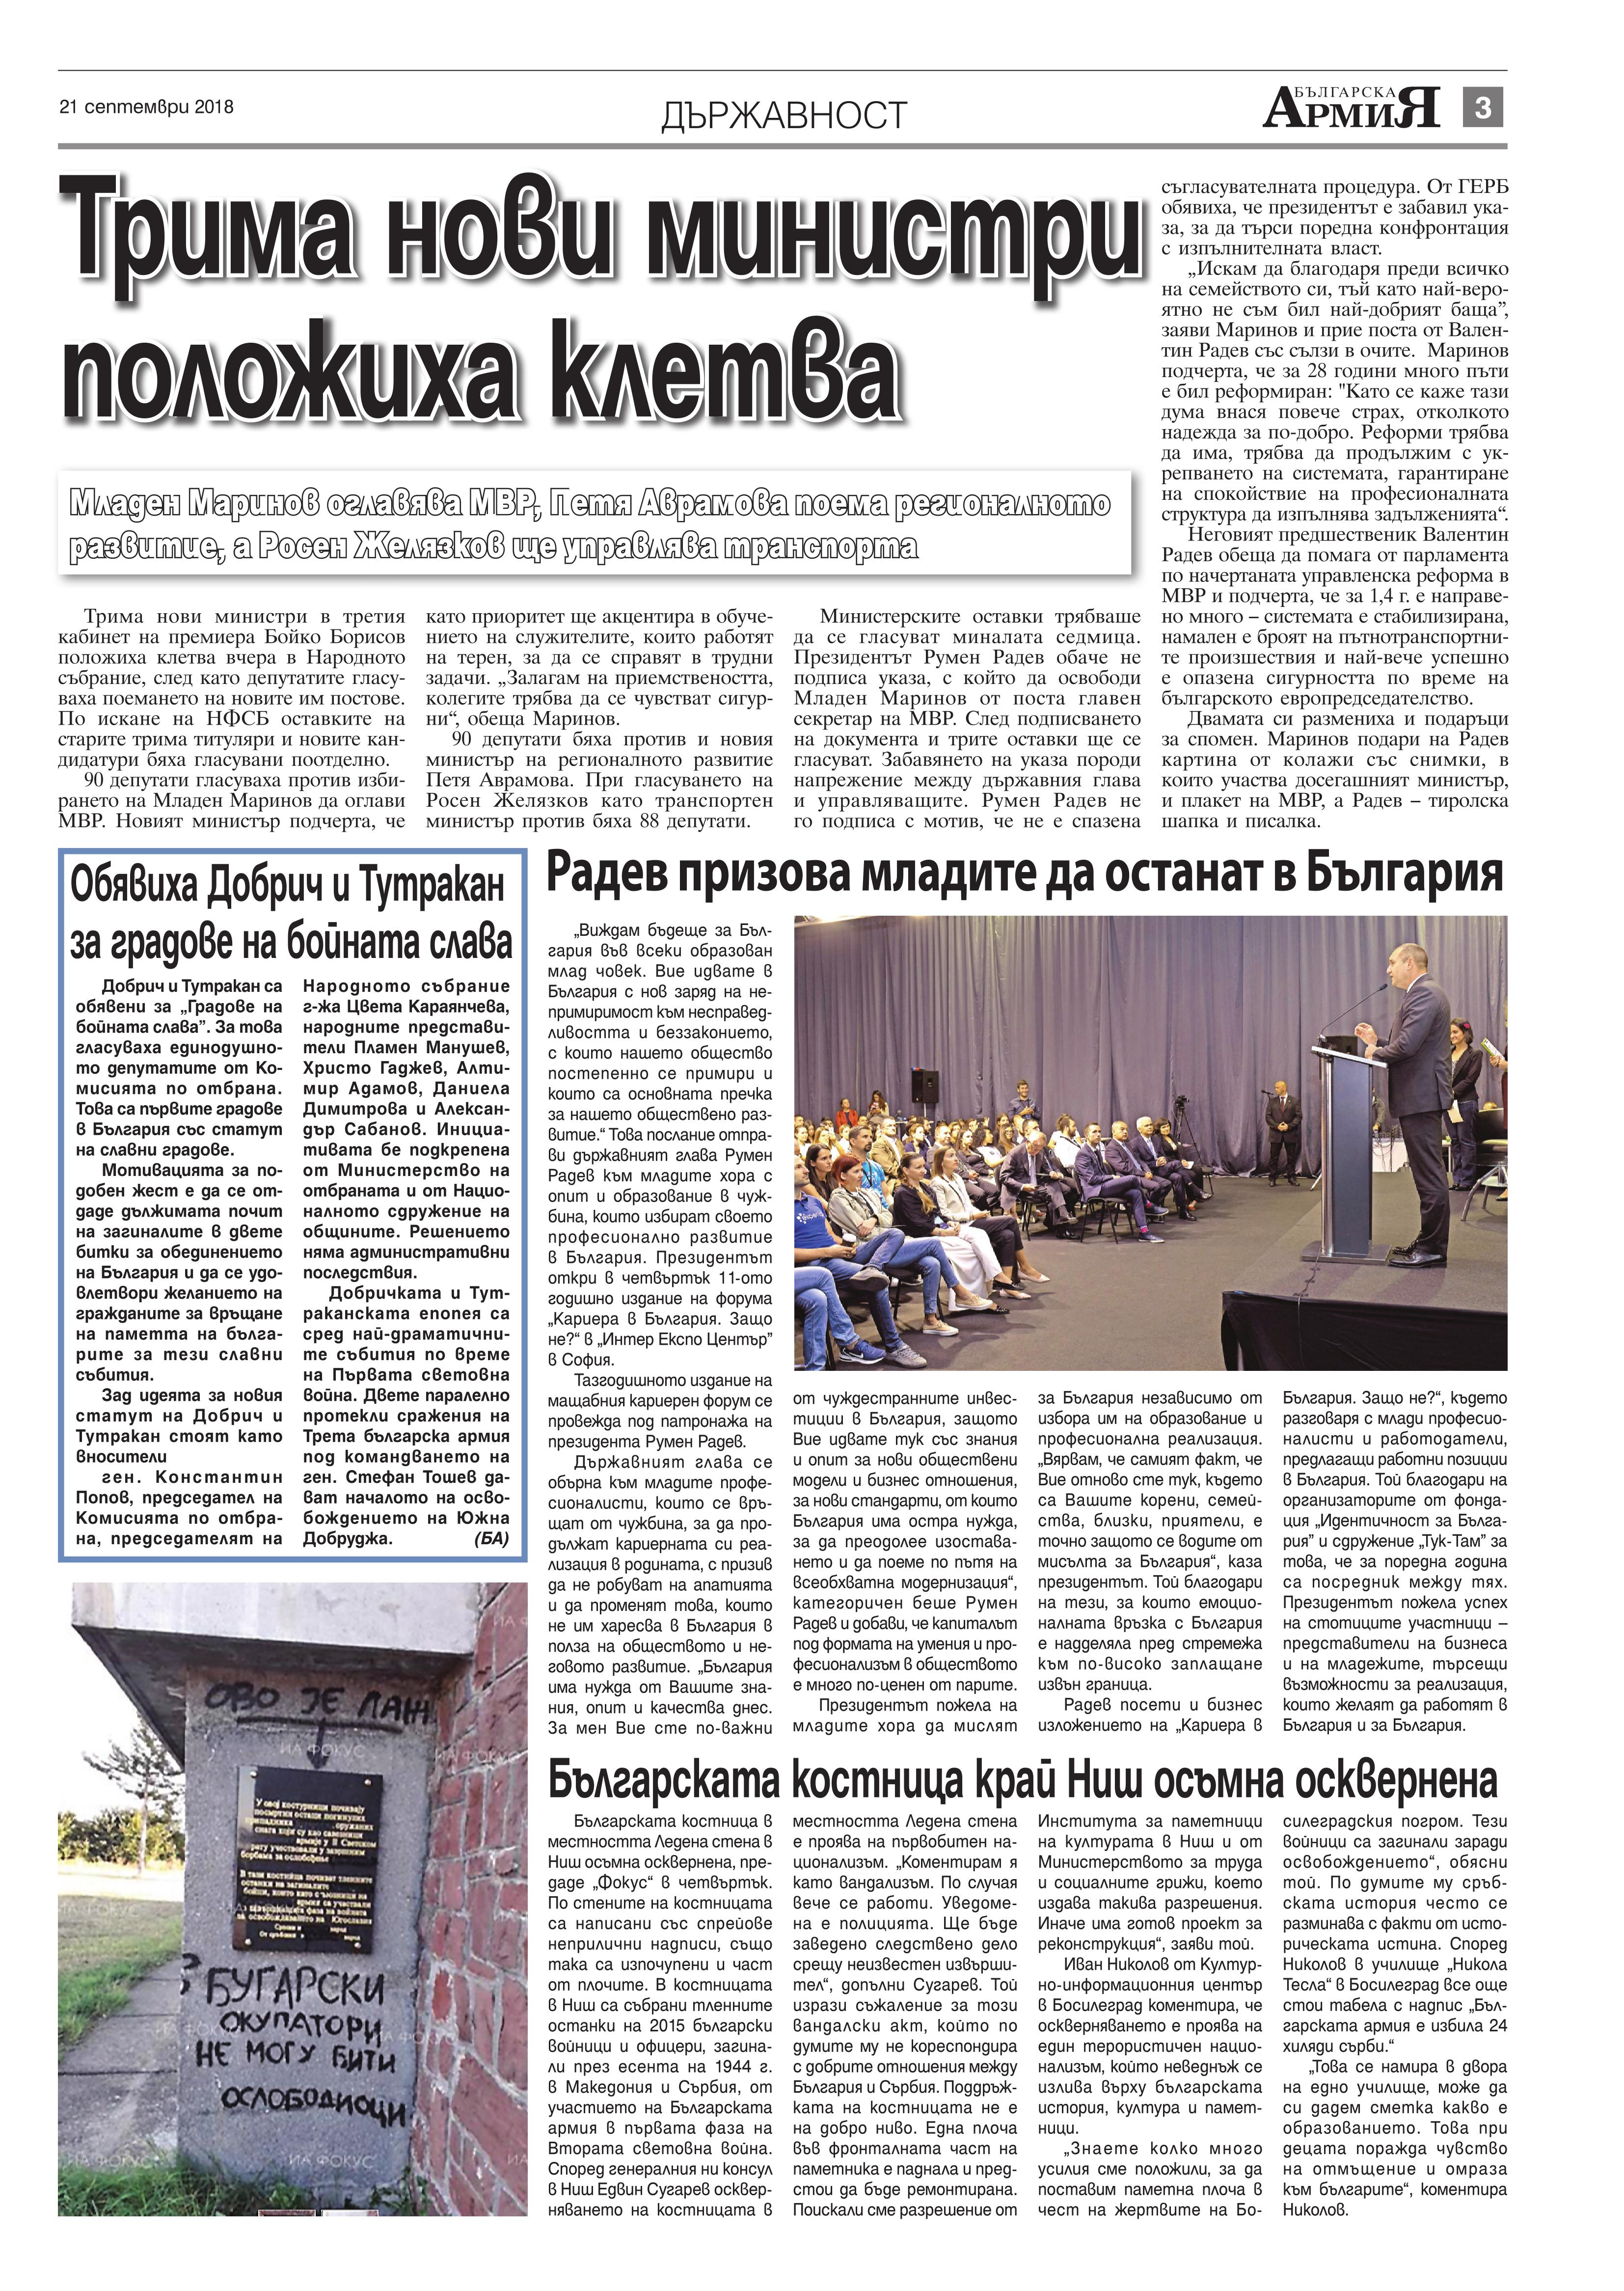 https://armymedia.bg/wp-content/uploads/2015/06/03.page1_-63.jpg